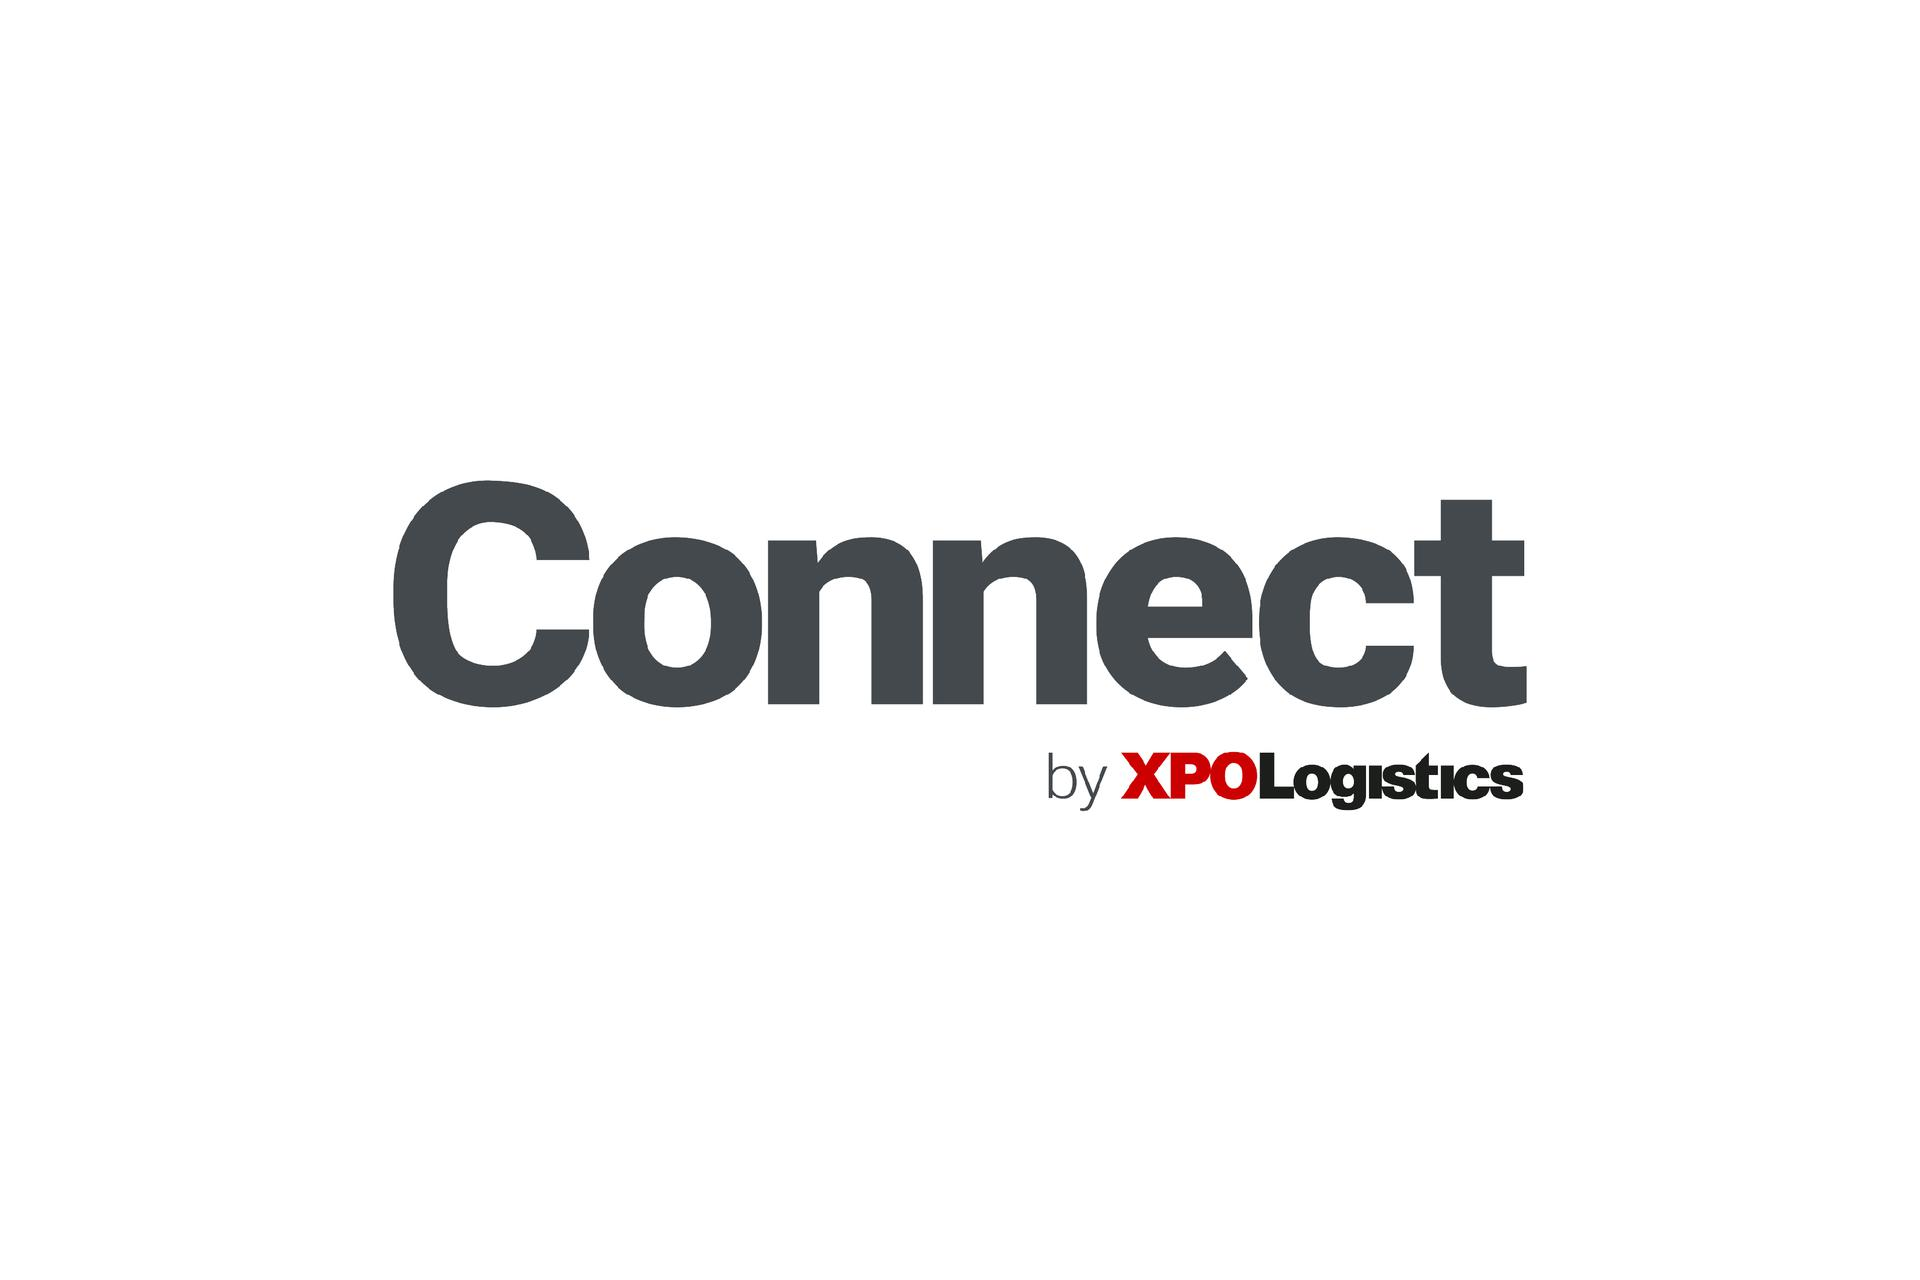 XPO Connect interface